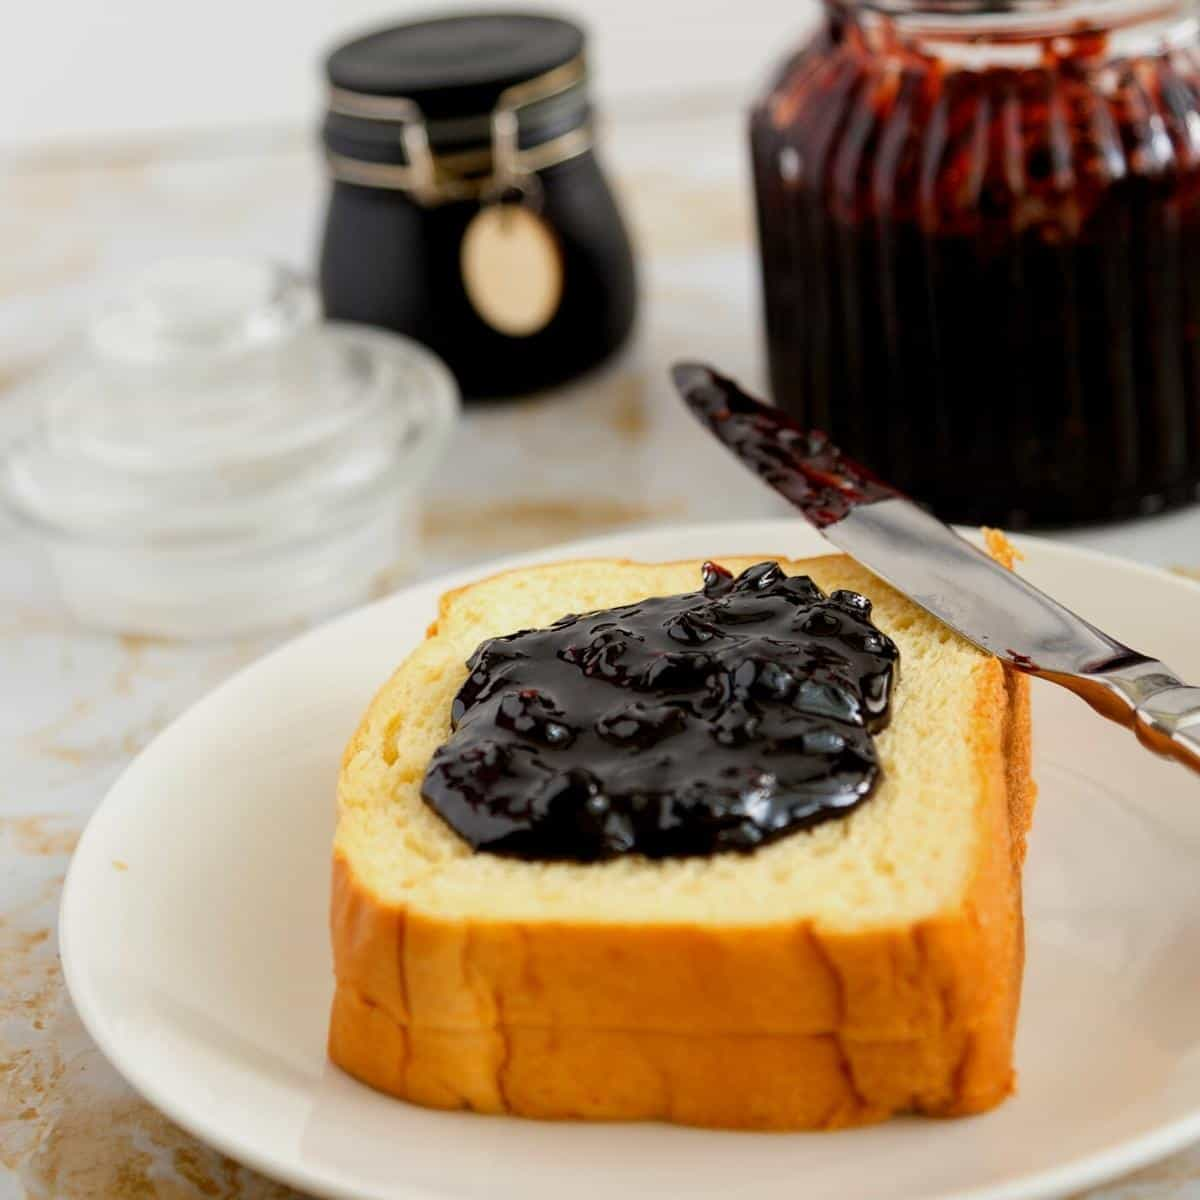 A brioche slice of bread with blueberry jam.